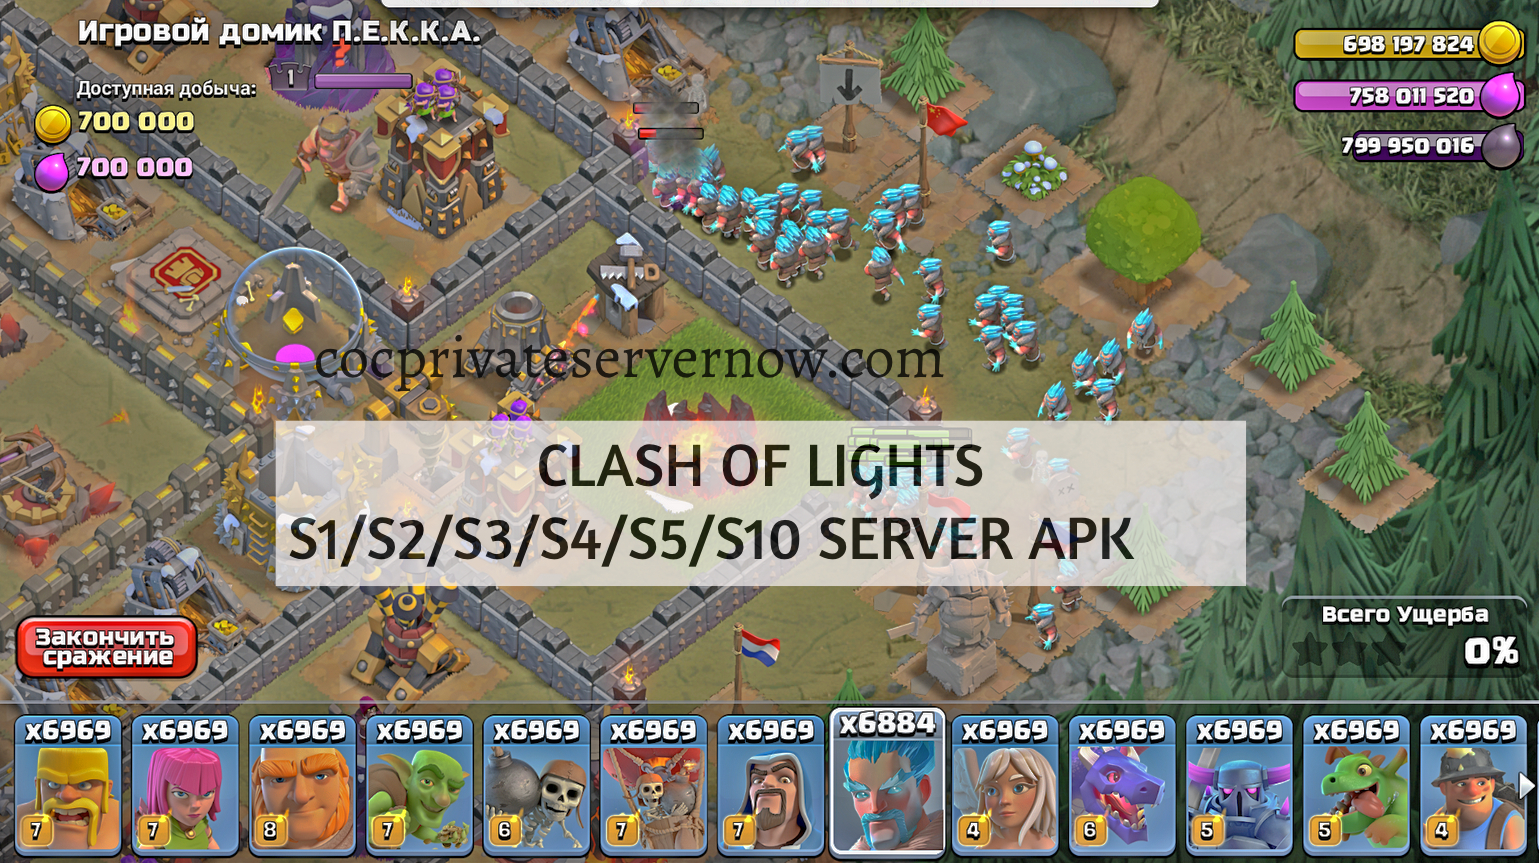 Latest Clash Of Lights Server APK download